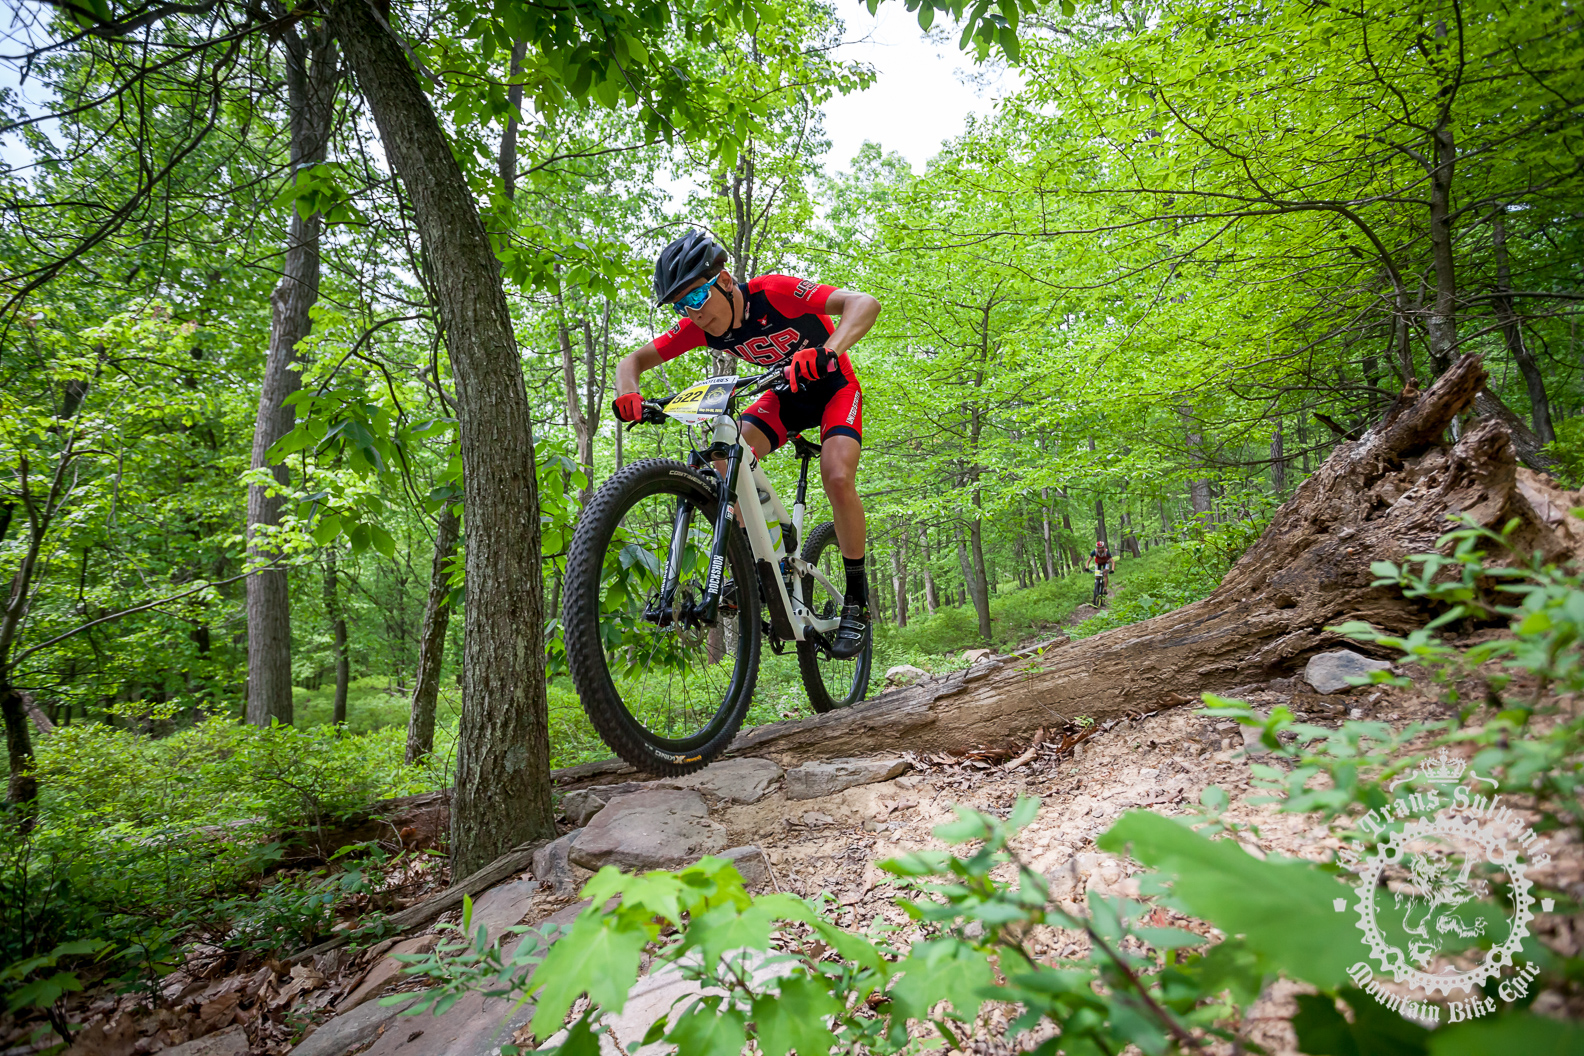 Levi Kurlander (Colt Training Systems) rallies a section of singletrack at the NoTubes Trans-Sylvania Epic. Photo by the Trans-Sylvania Epic Media Team